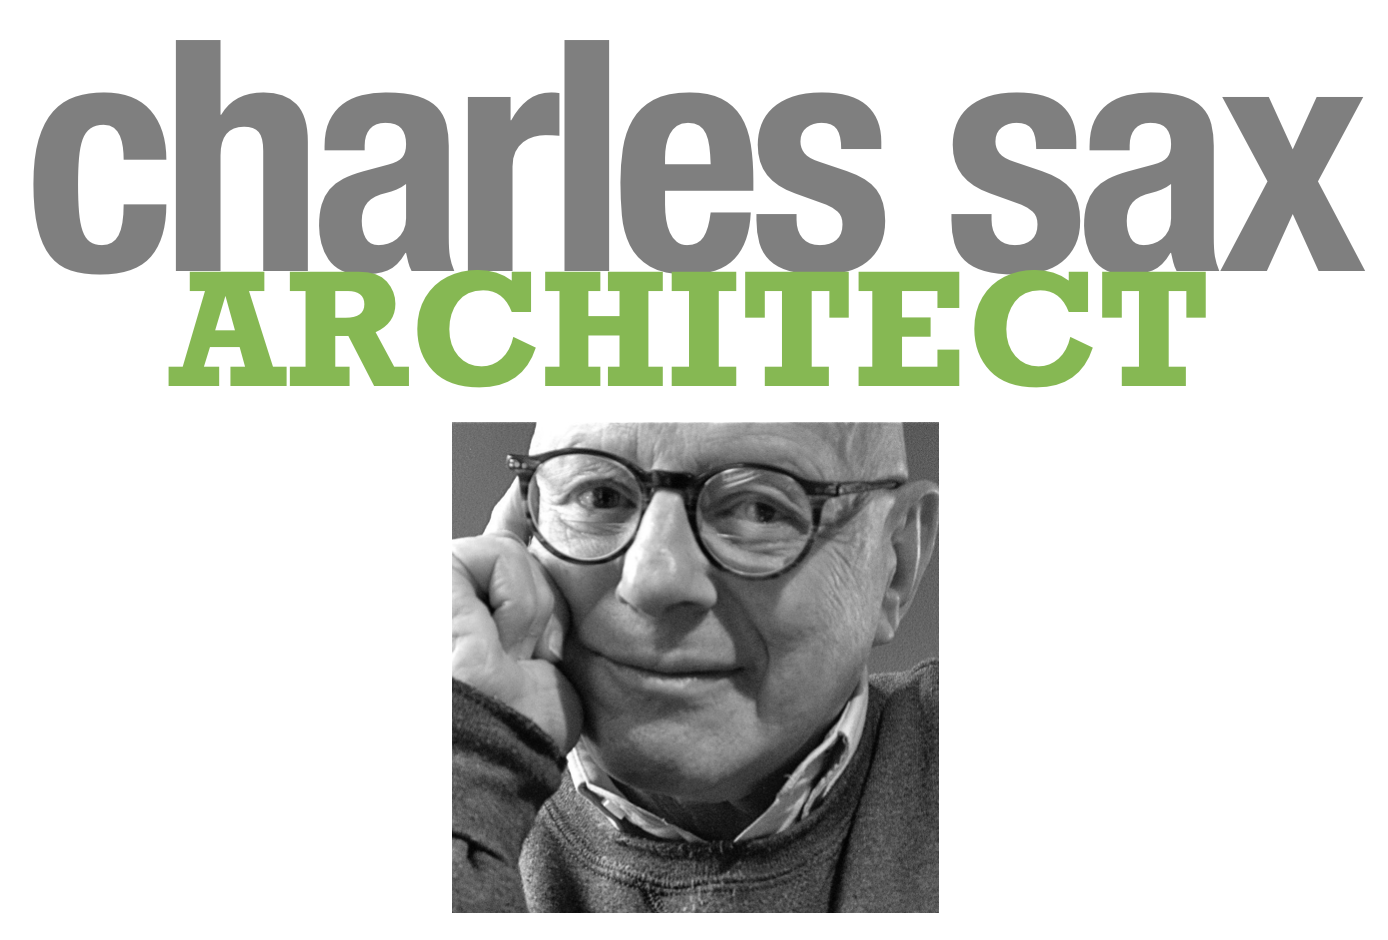 Charles Sax Architect